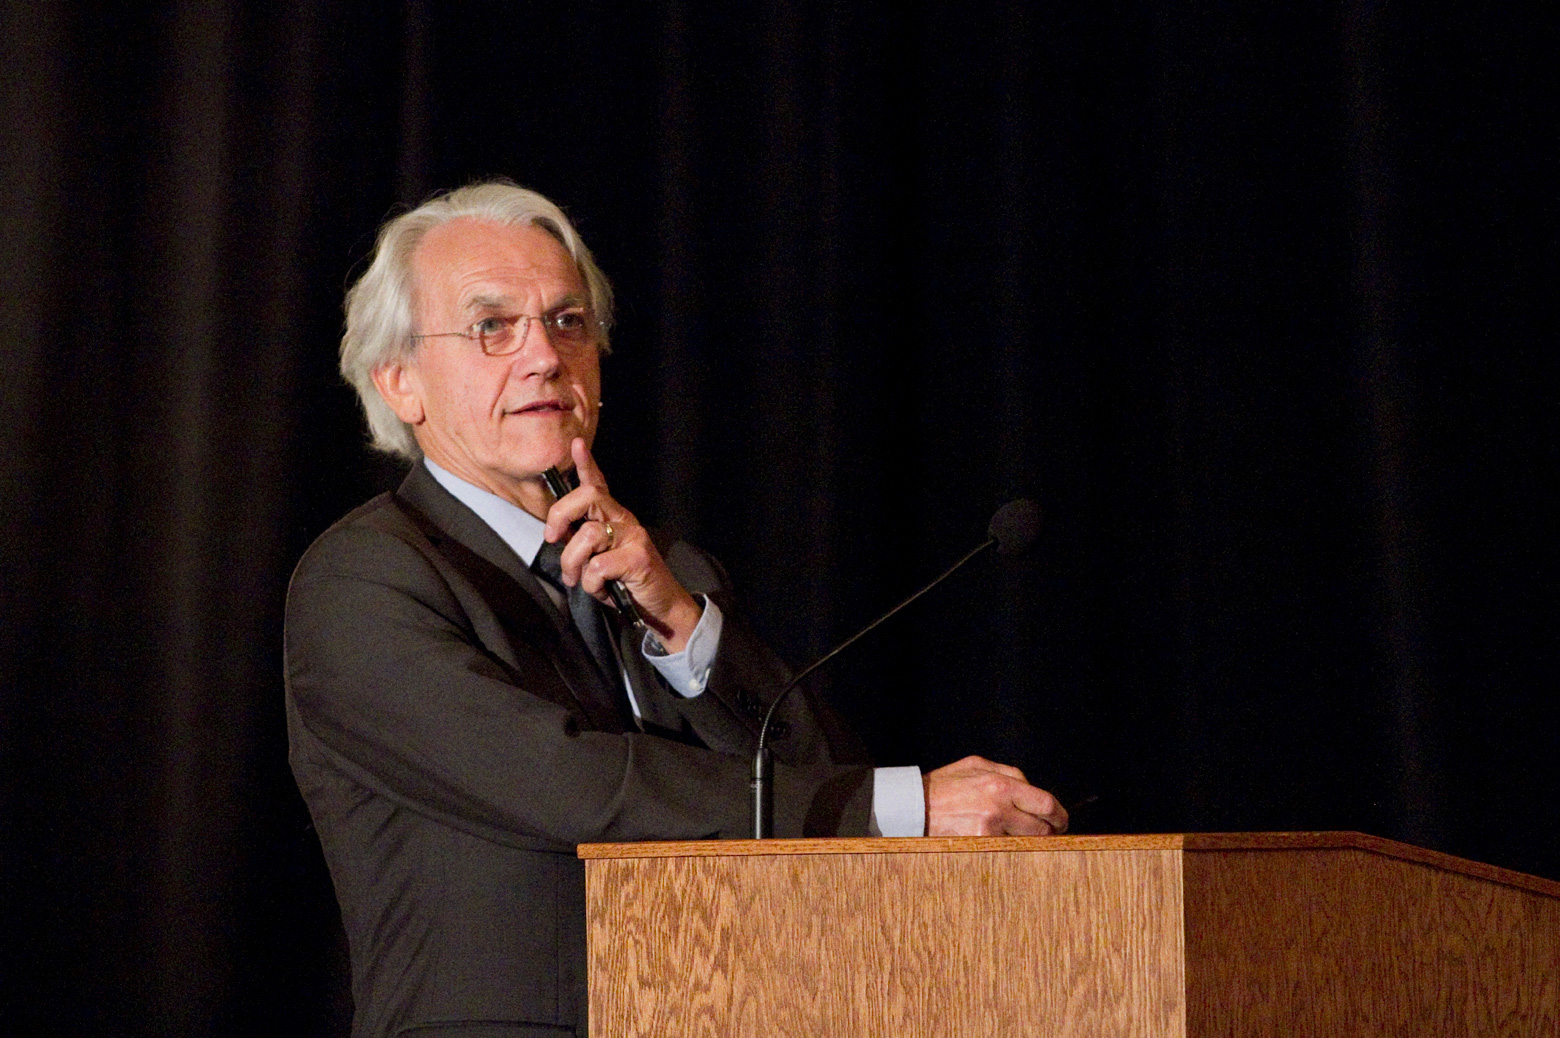 Gerard Mourou speaks at a symposium in 2011 marking the 50th anniversary of the discovery of nonlinear optics at U-M. Daryl Marshke/Michigan Photography